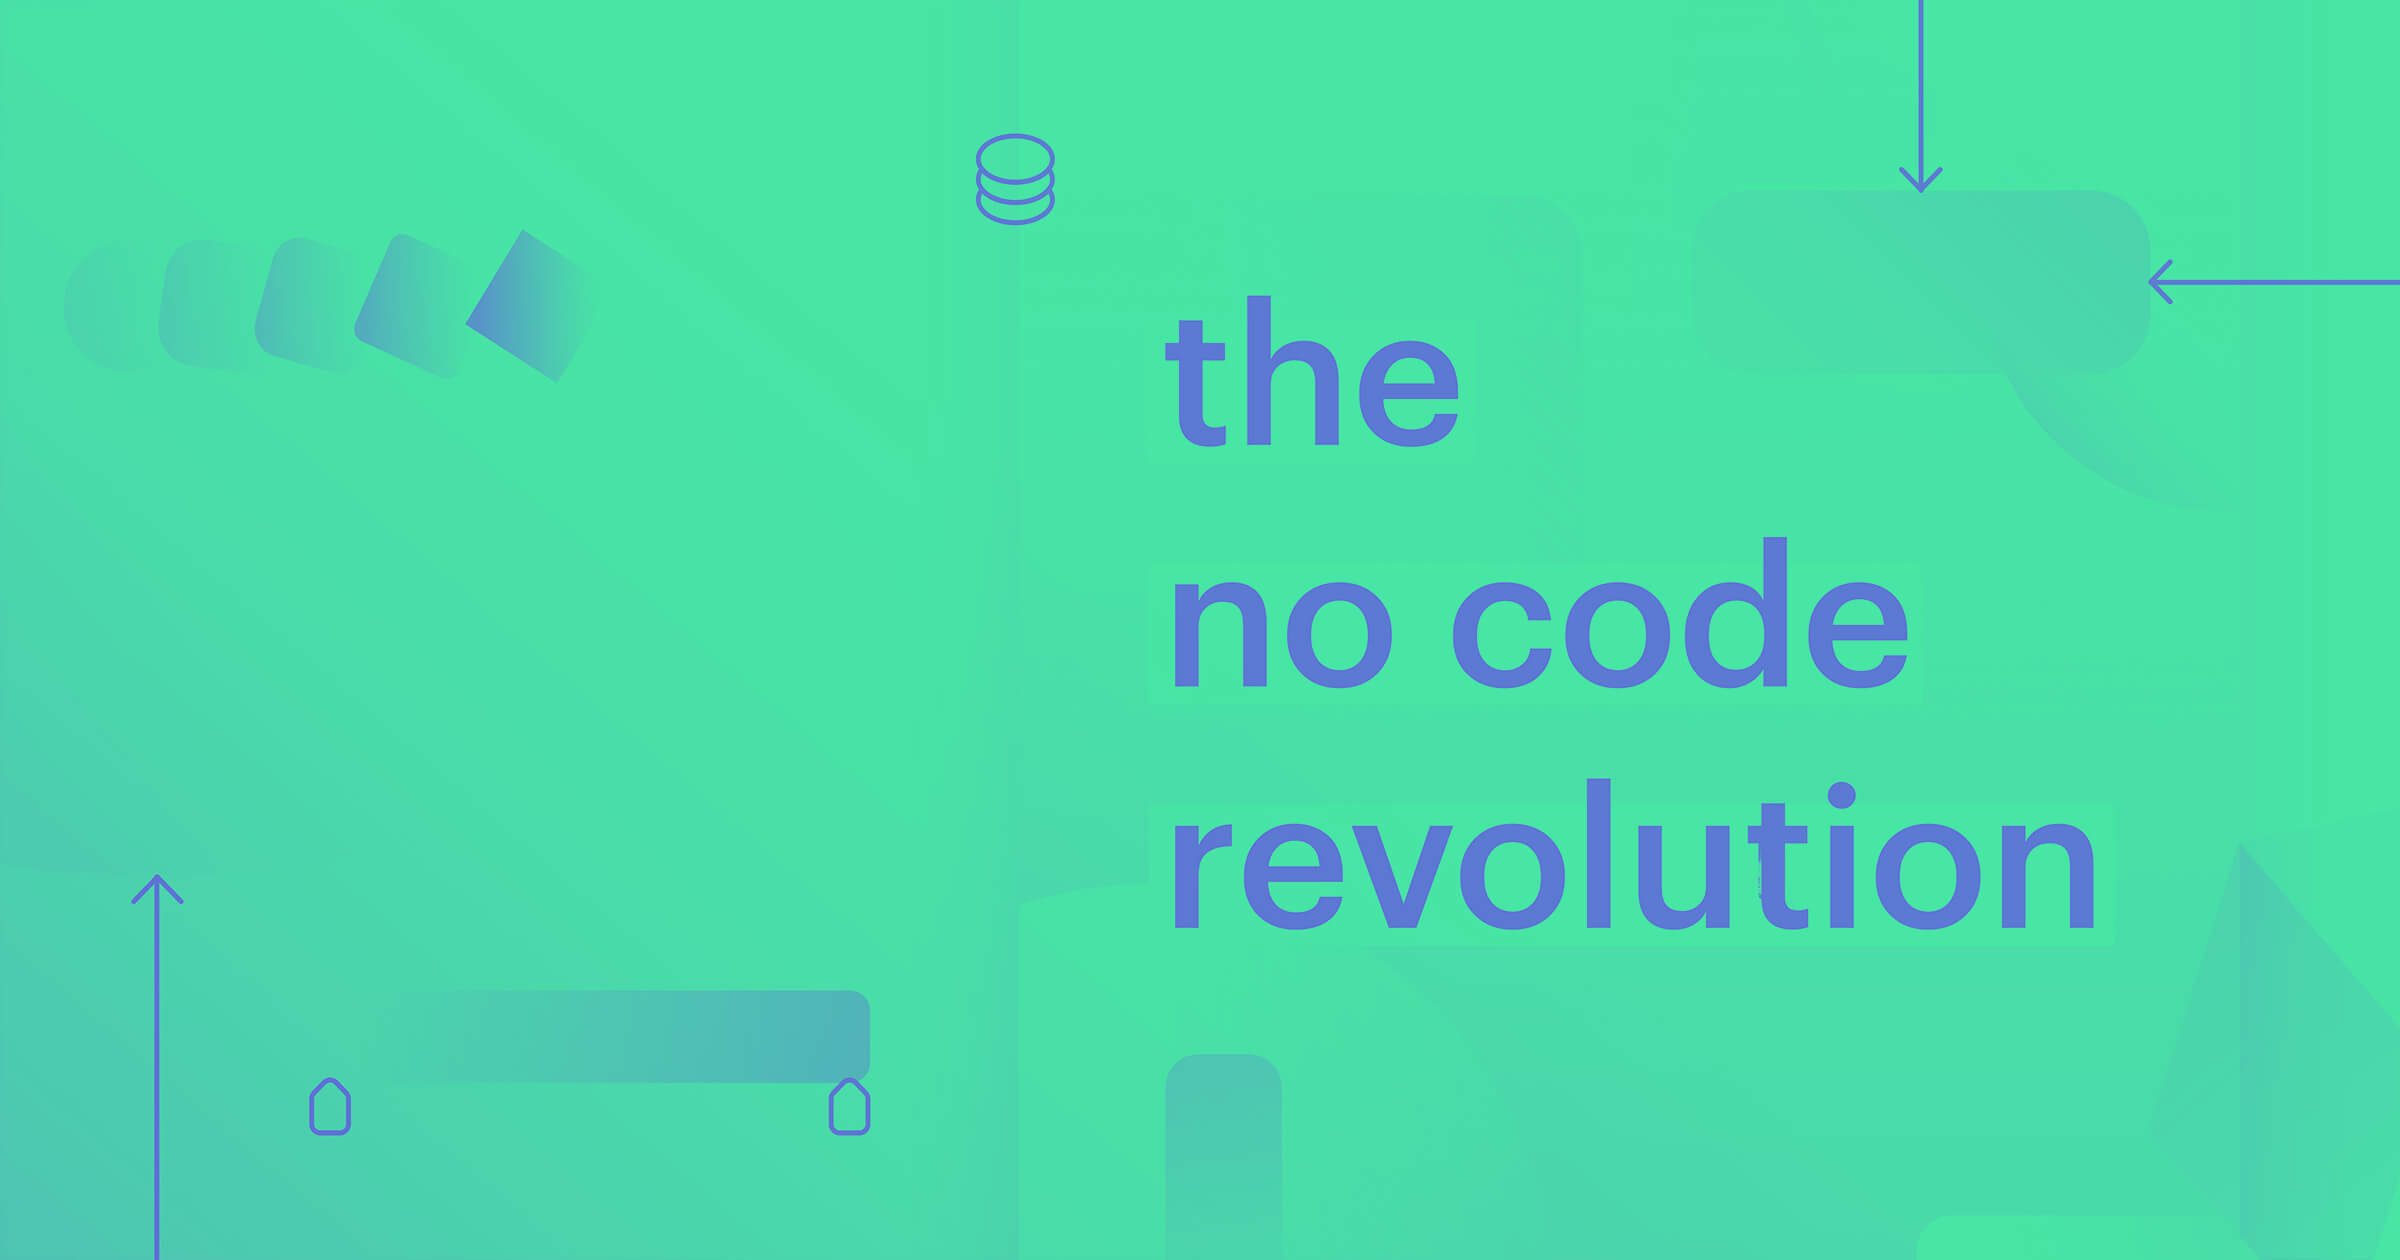 """A green background with blue text and abstract shapes, cursors and lines behind the text """"the no code revolution"""" left aligned along the center of the image"""